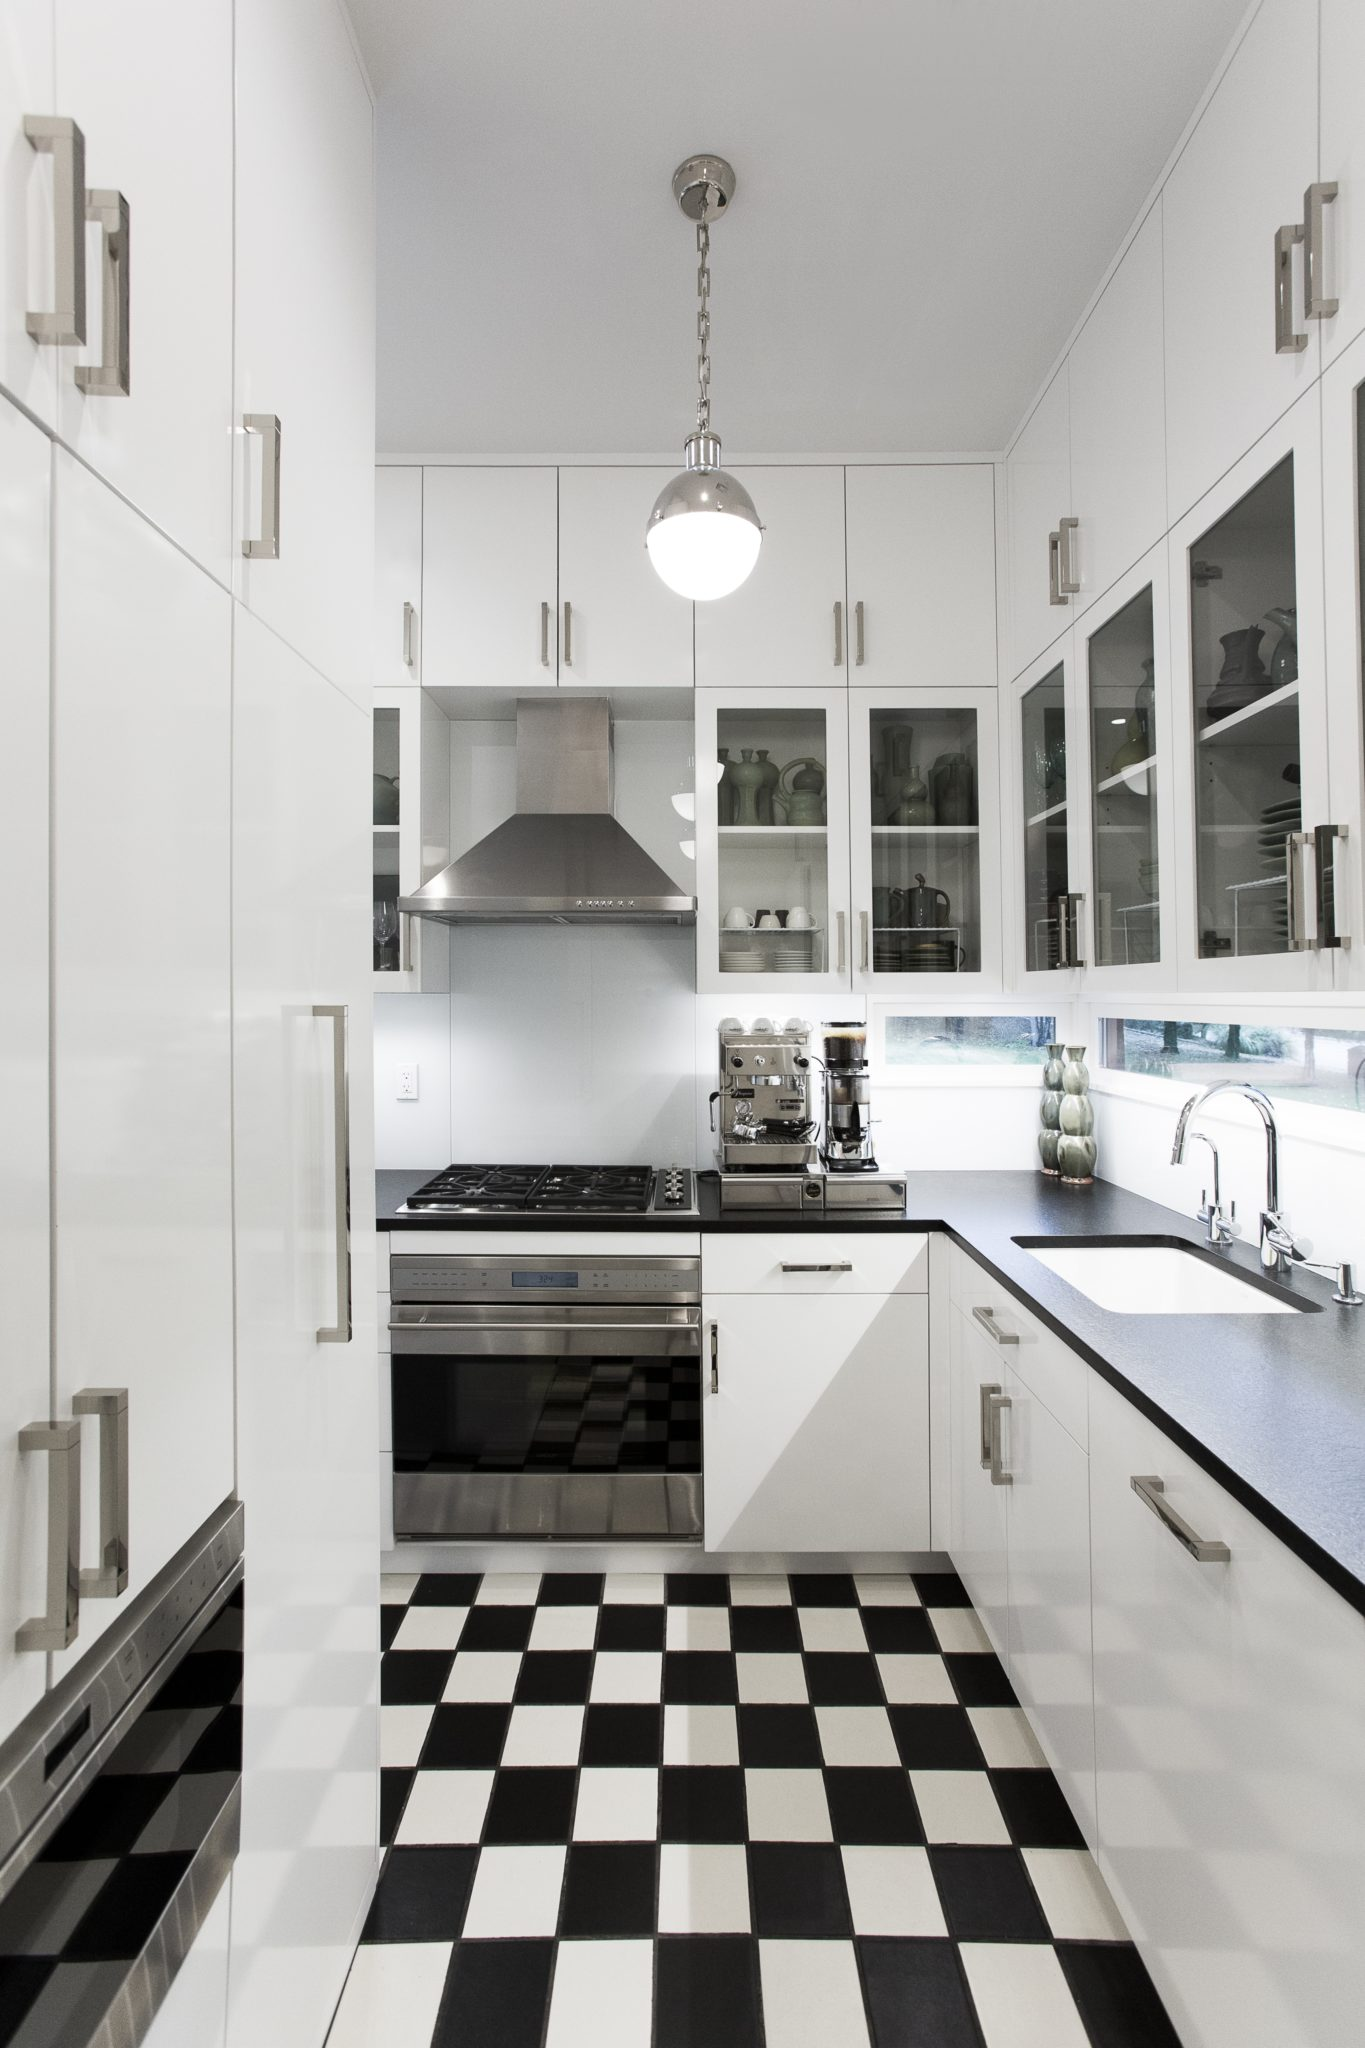 A black and white kitchen by House of Funk